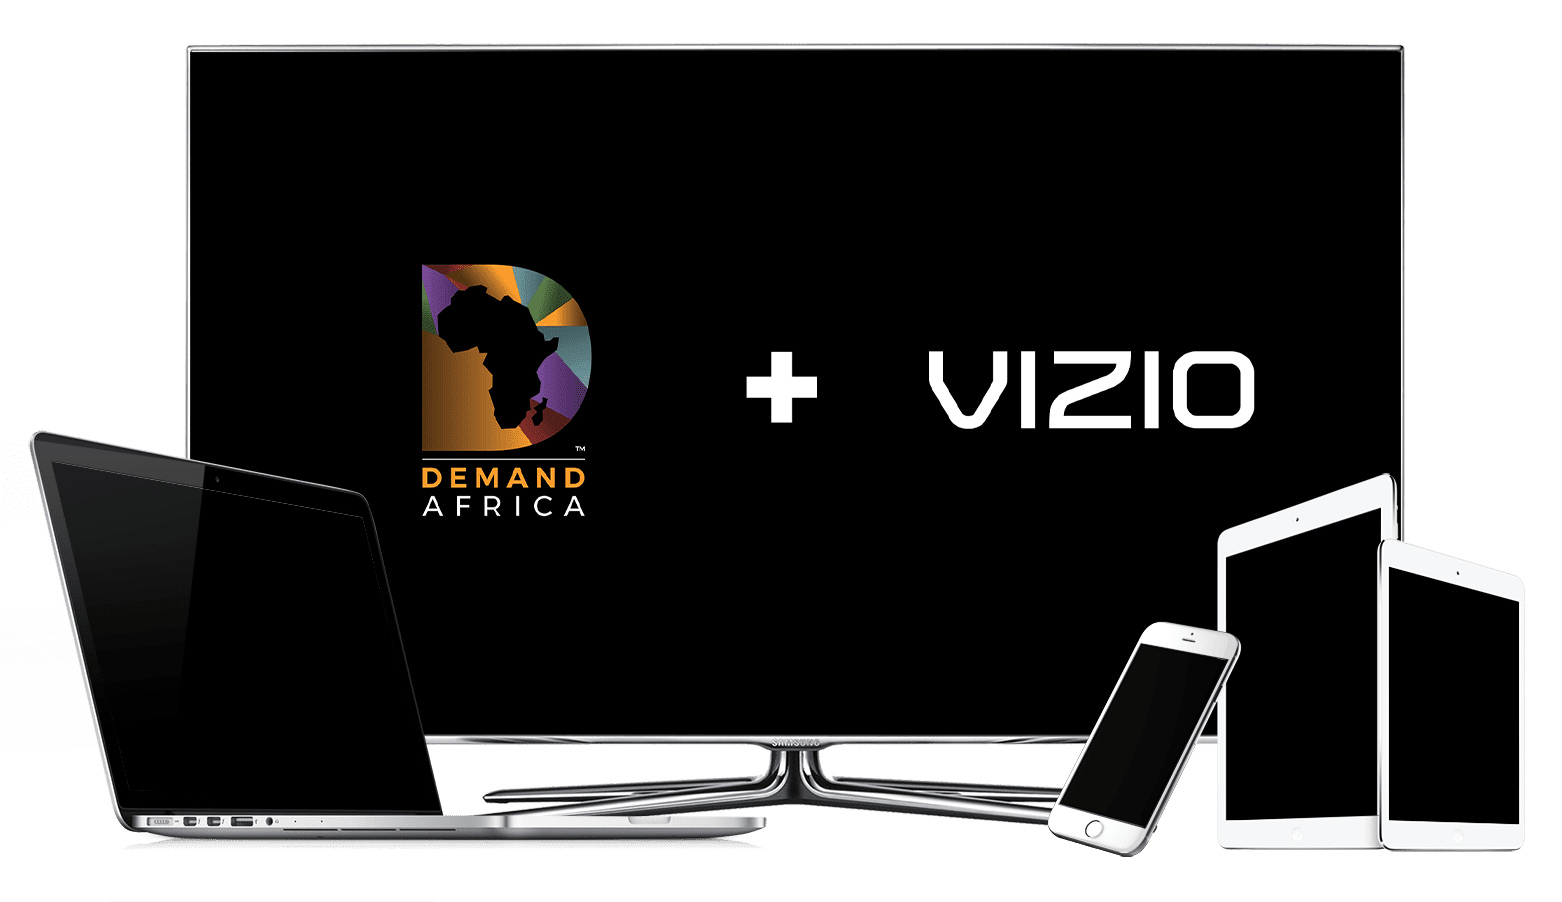 Demand Africa Vizio Devices